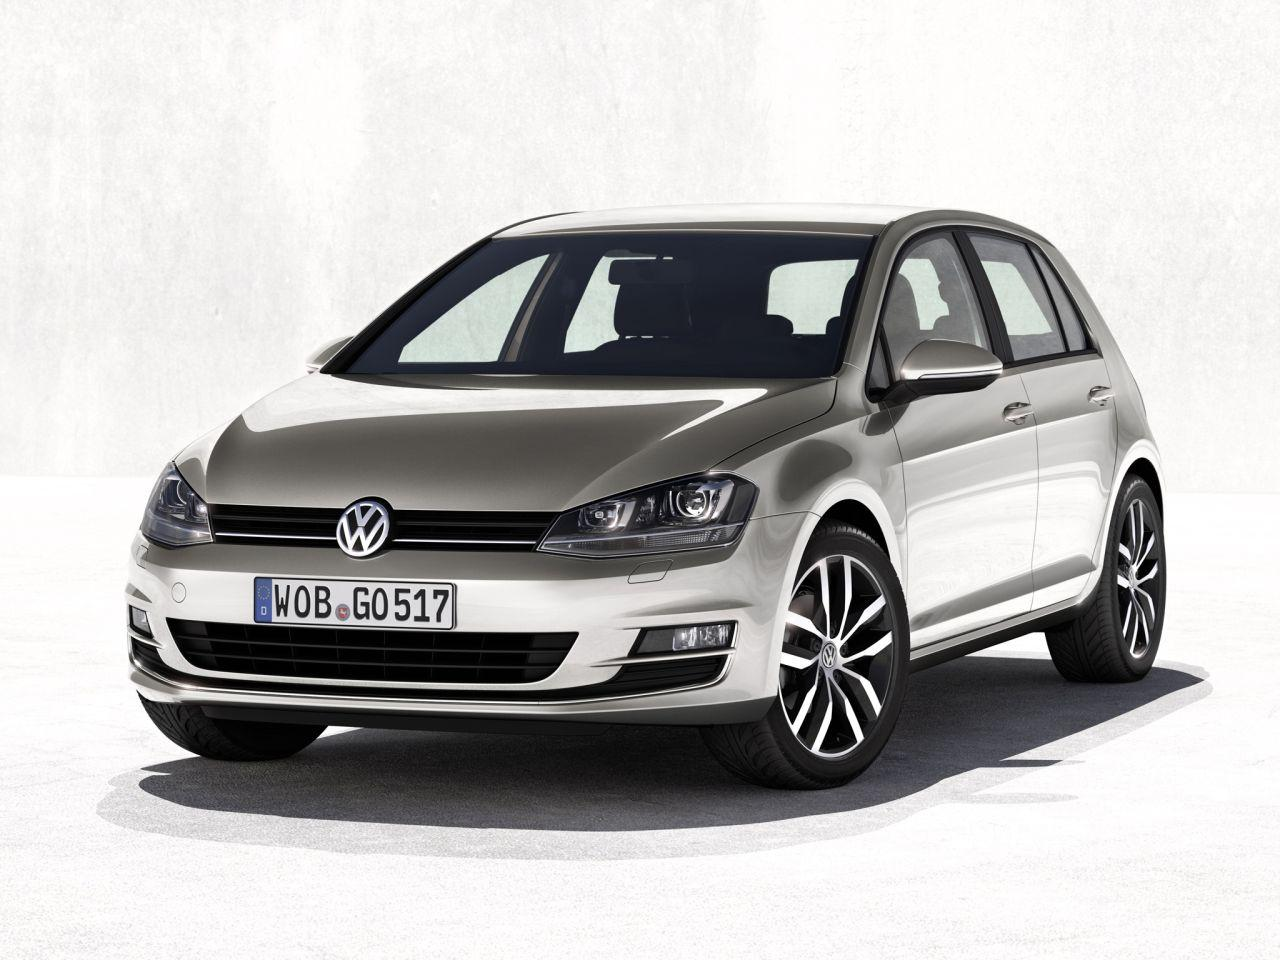 volkswagen golf vii fully revealed in new leaked photos. Black Bedroom Furniture Sets. Home Design Ideas